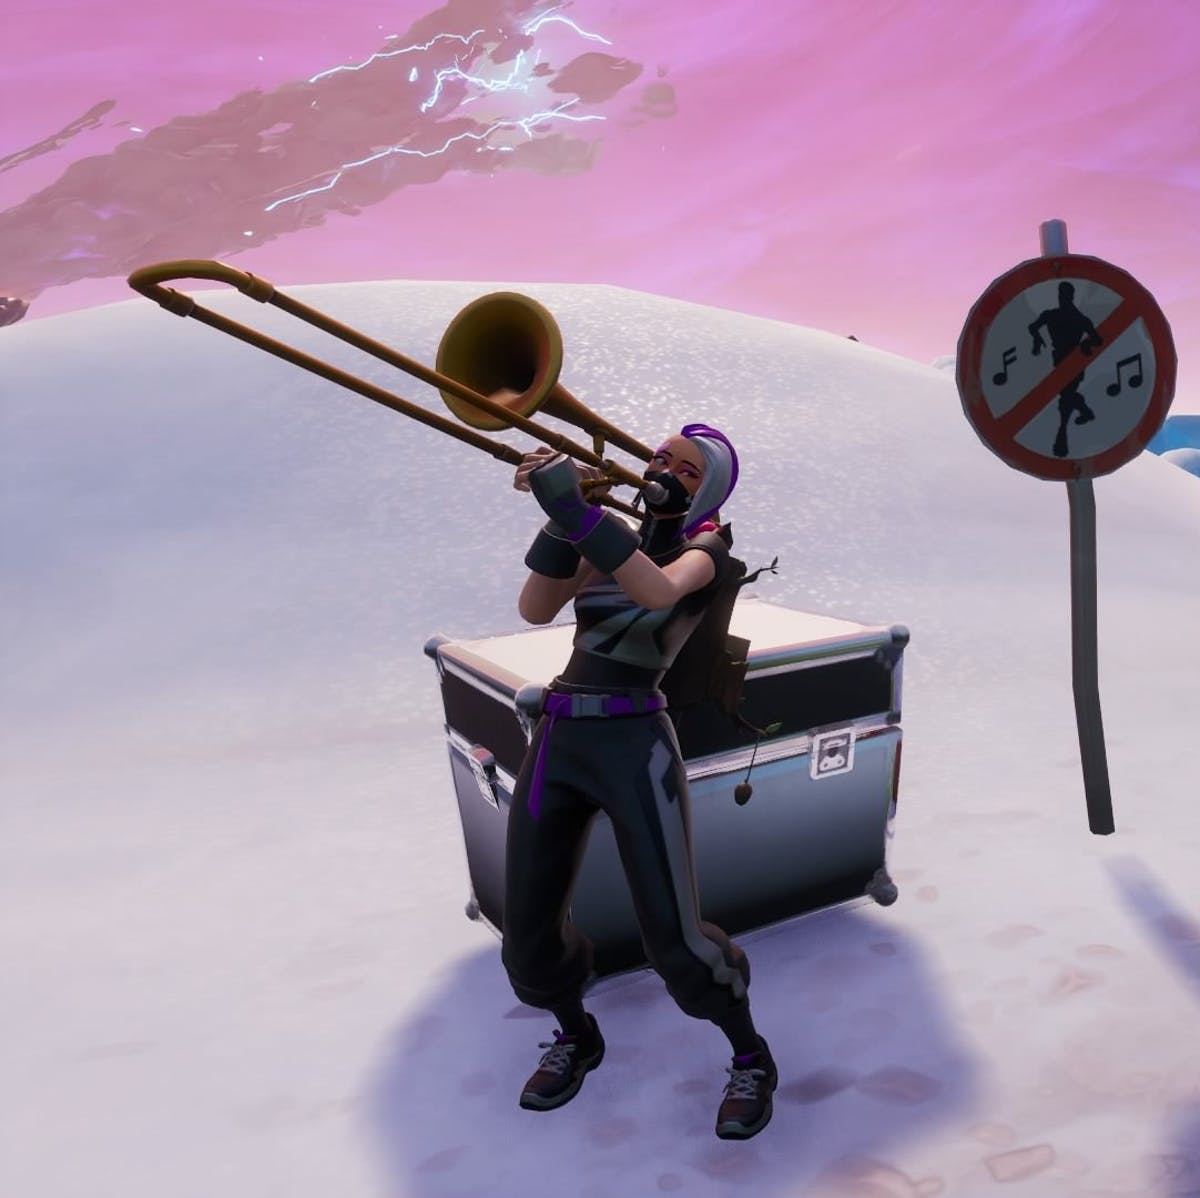 'Fortnite' No Dancing Sign Locations: Where to Find Them for Boogie Down